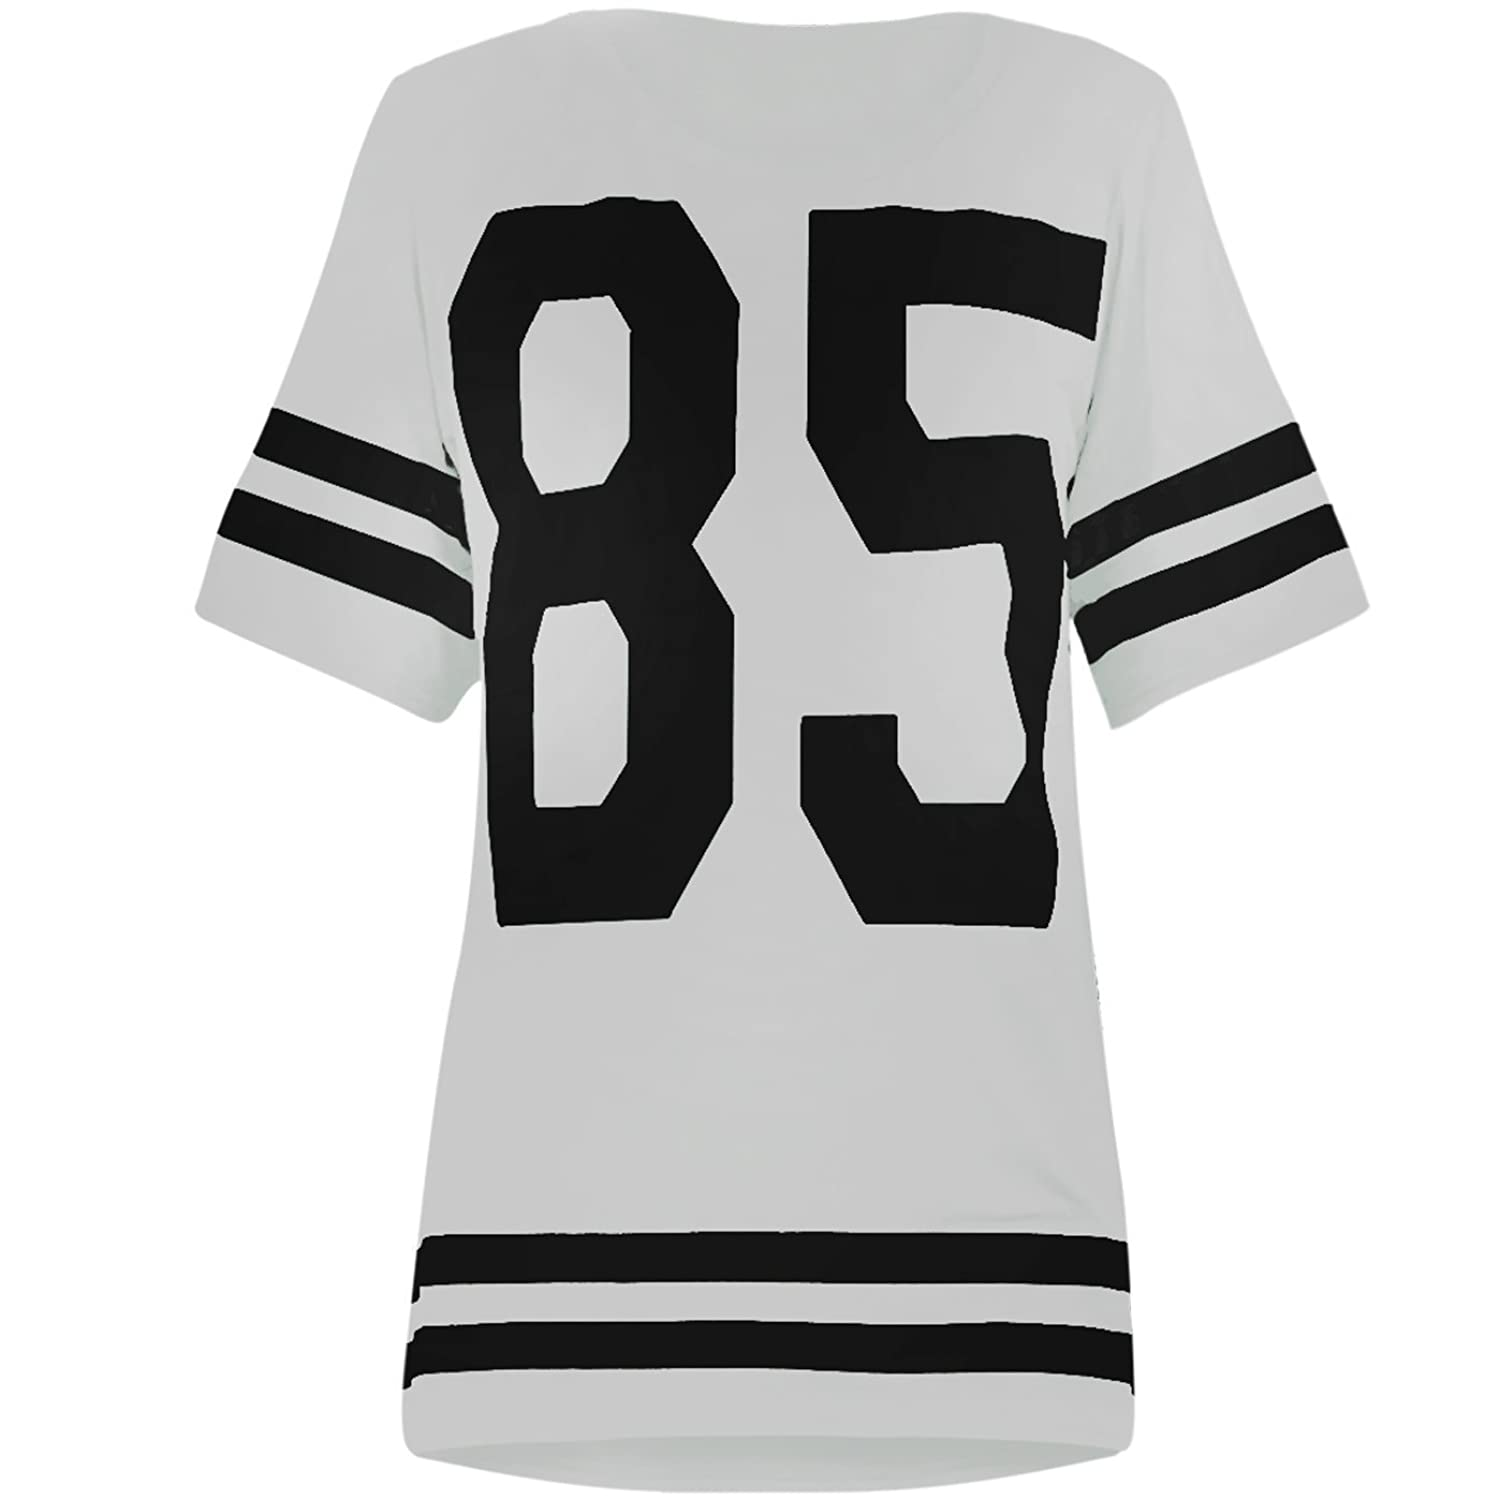 american football jersey white